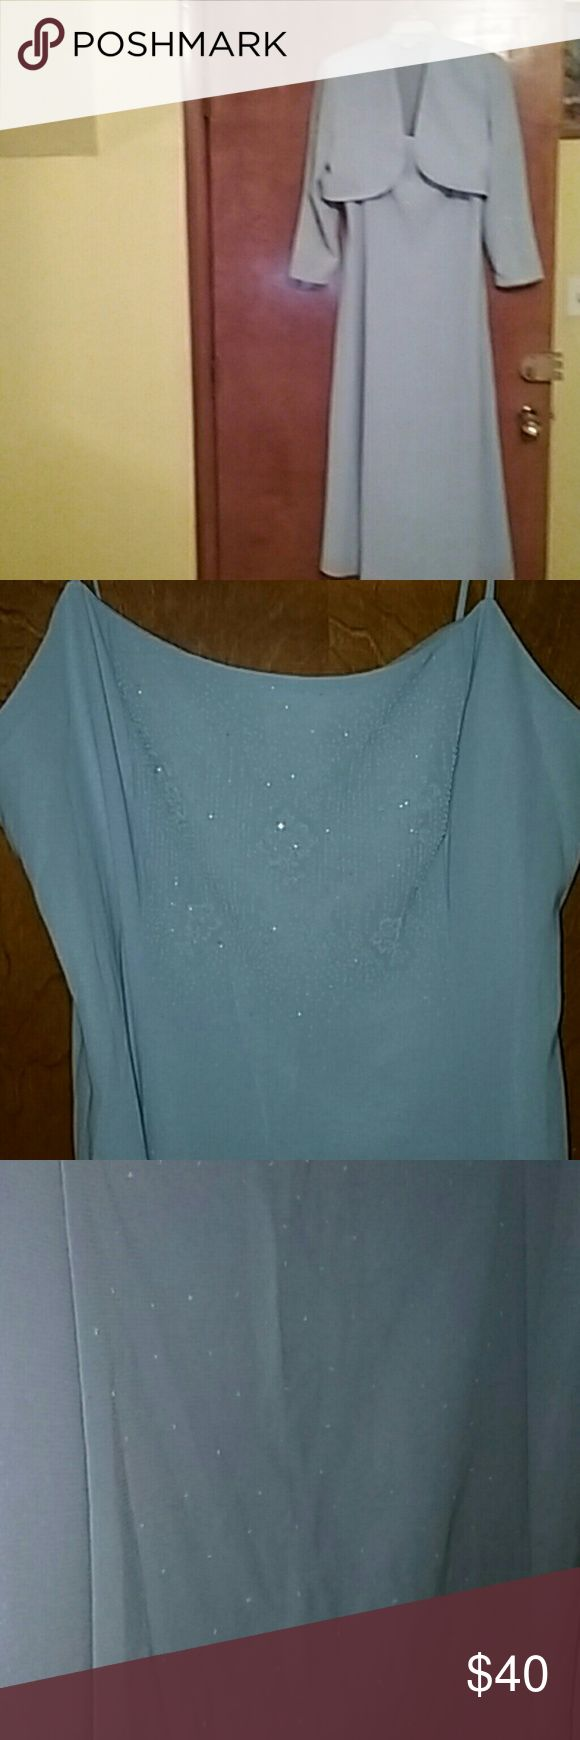 Light blue dress with jacket women Size 18. She fancy!! Light blue dress with icy look design. Great for any season! Size 18. Look fashionable in your figure! Dress is spaghetti string with a long sleeve jacket. Sally USA Dresses Long Sleeve